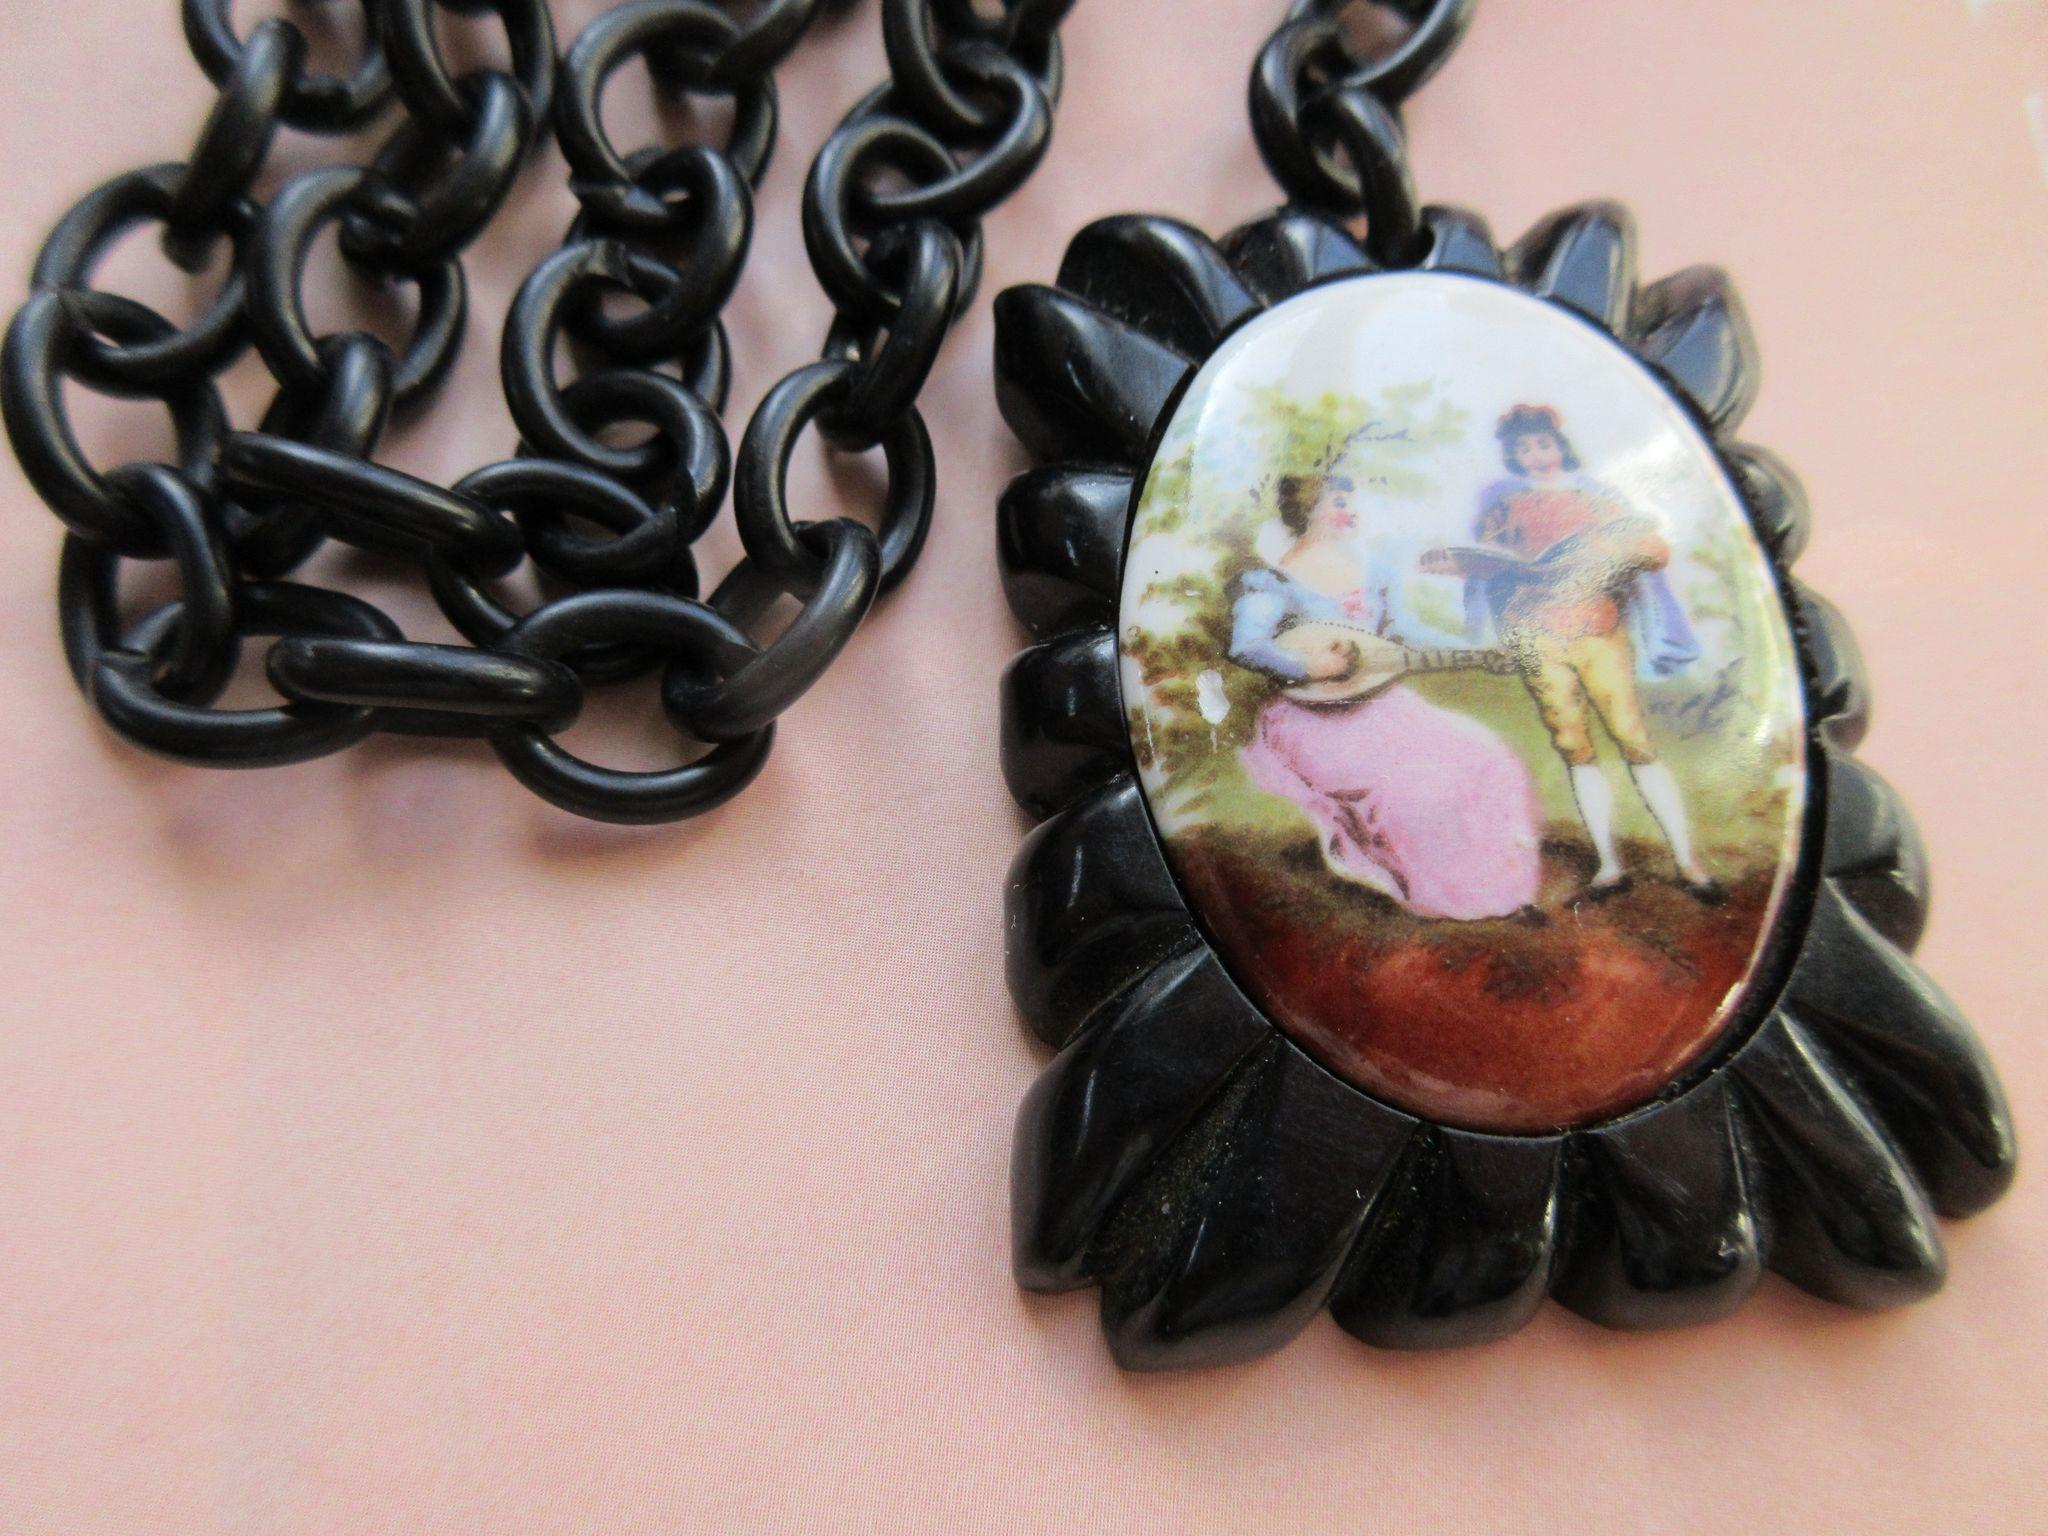 Vintage 1930s Bakelite and Porcelain Pendant on Celluloid Chain